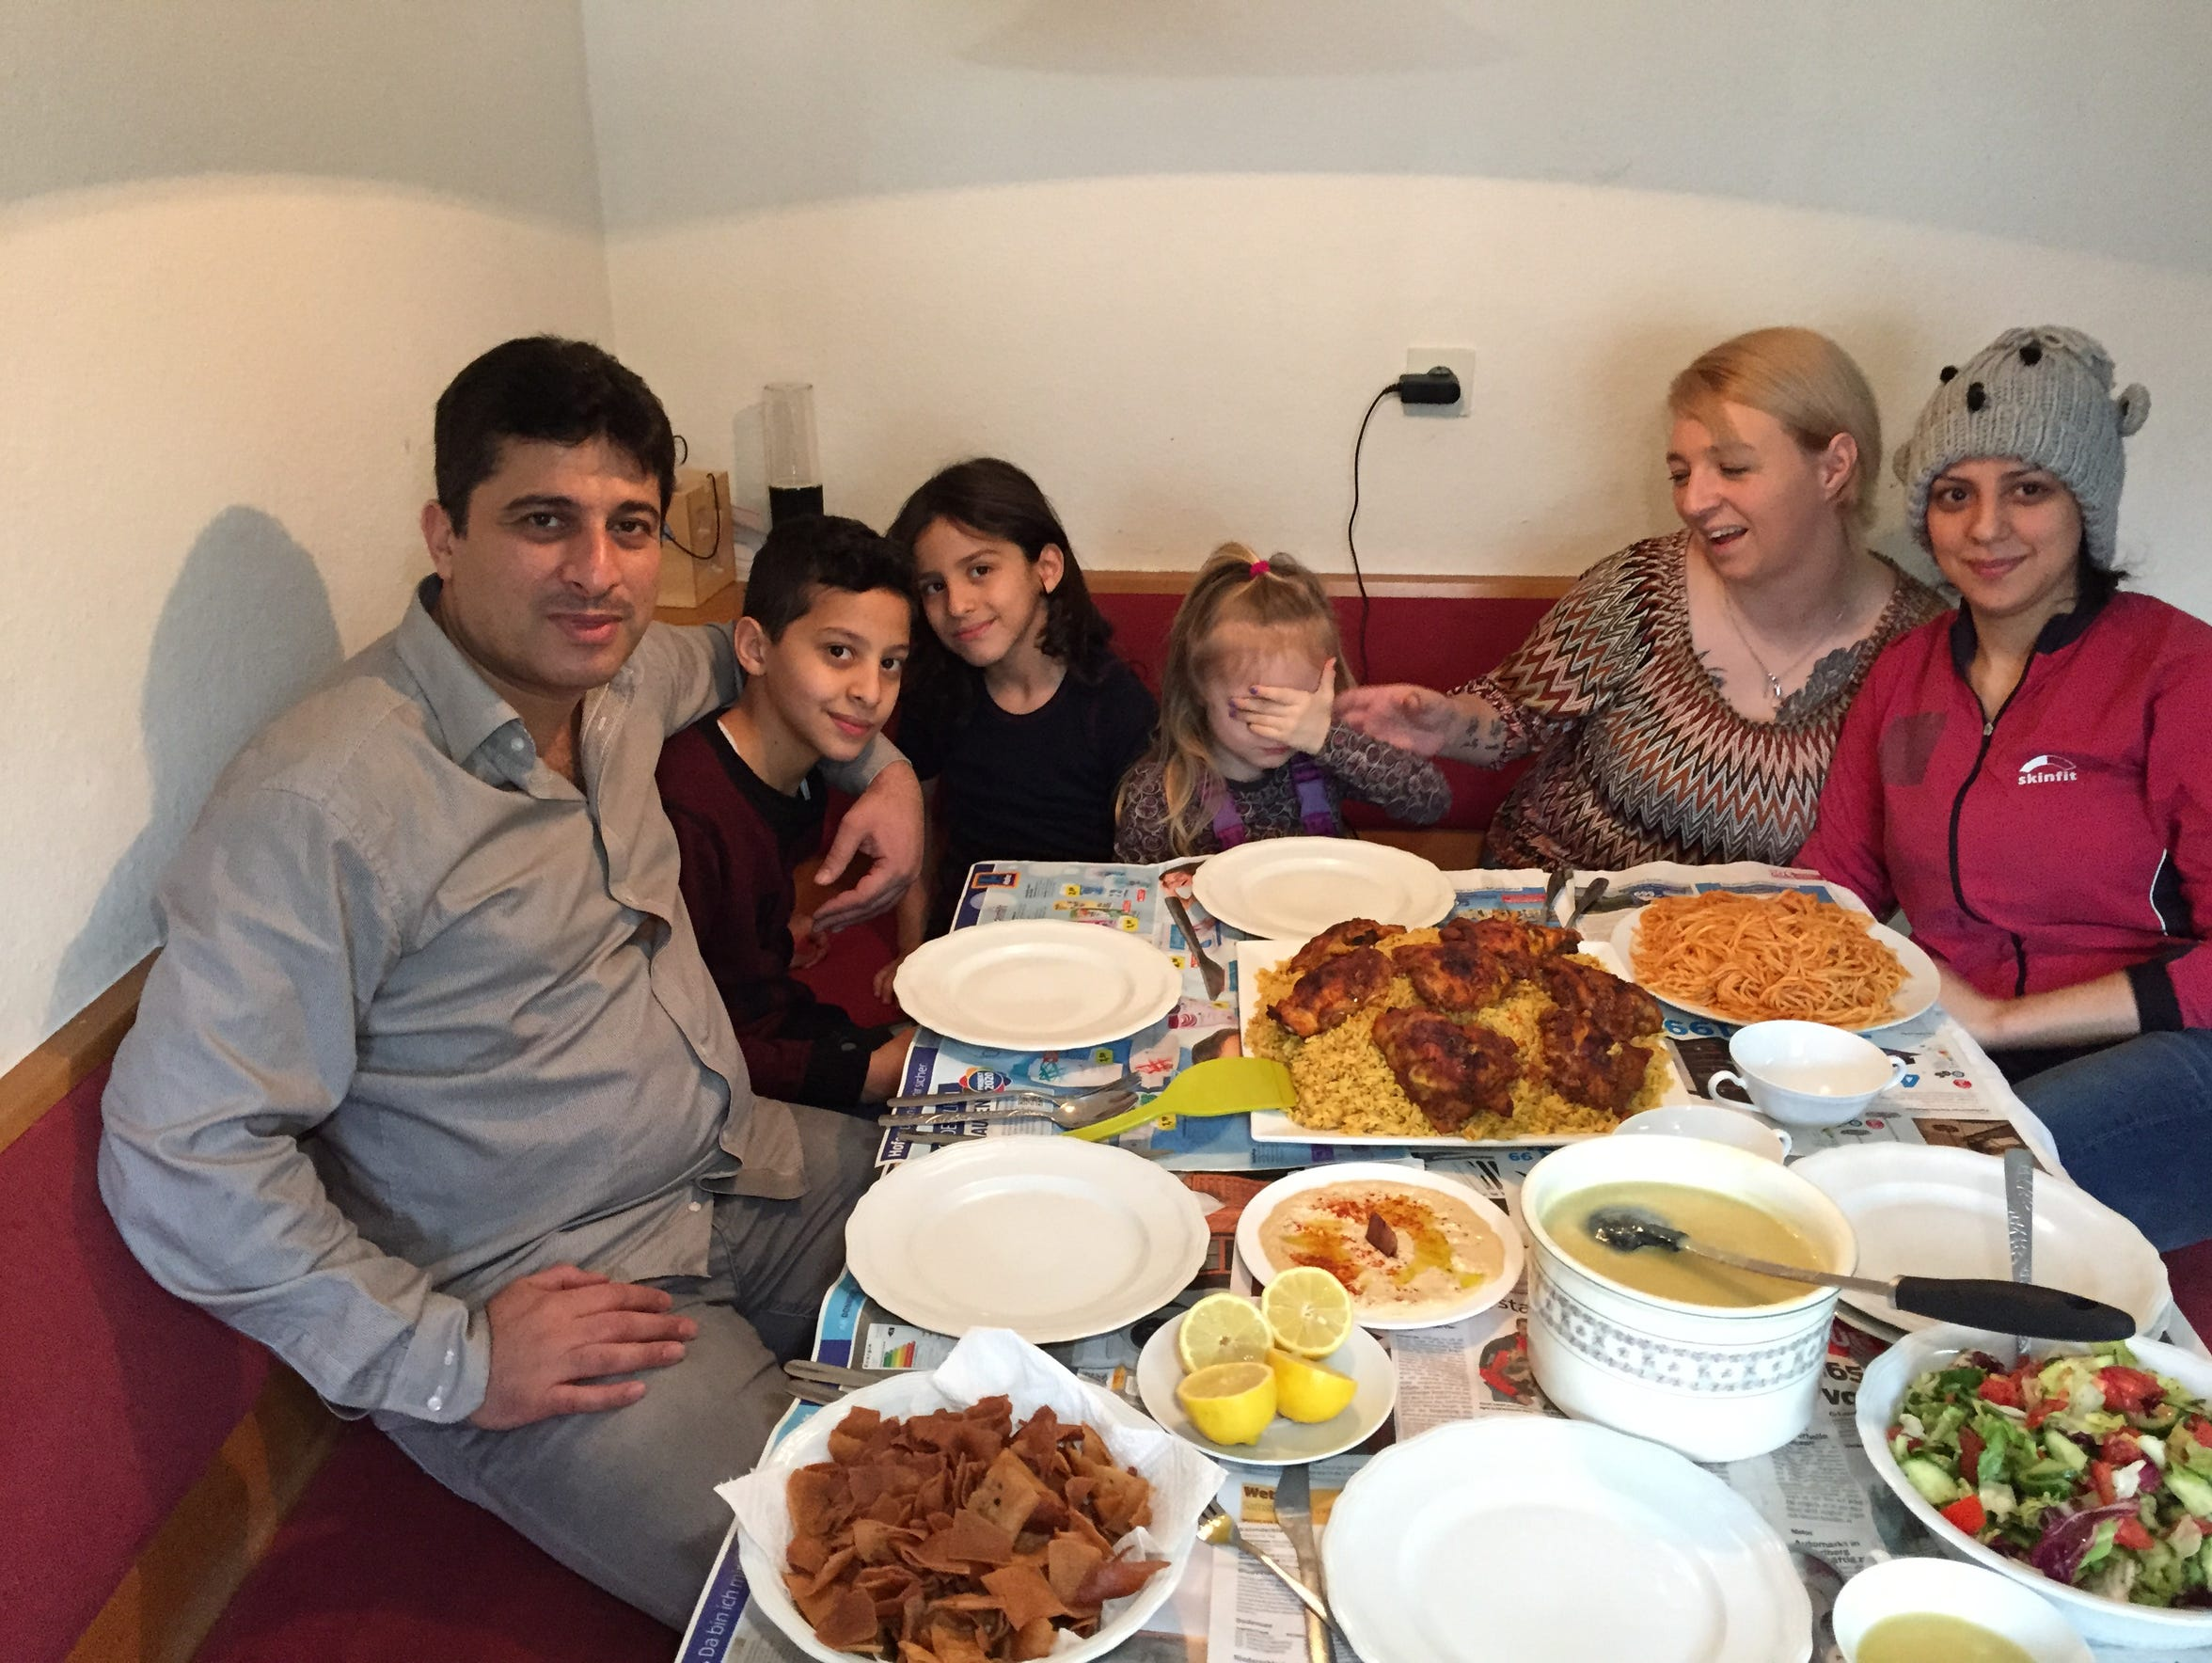 The Helani family serves lunch to their friends. From